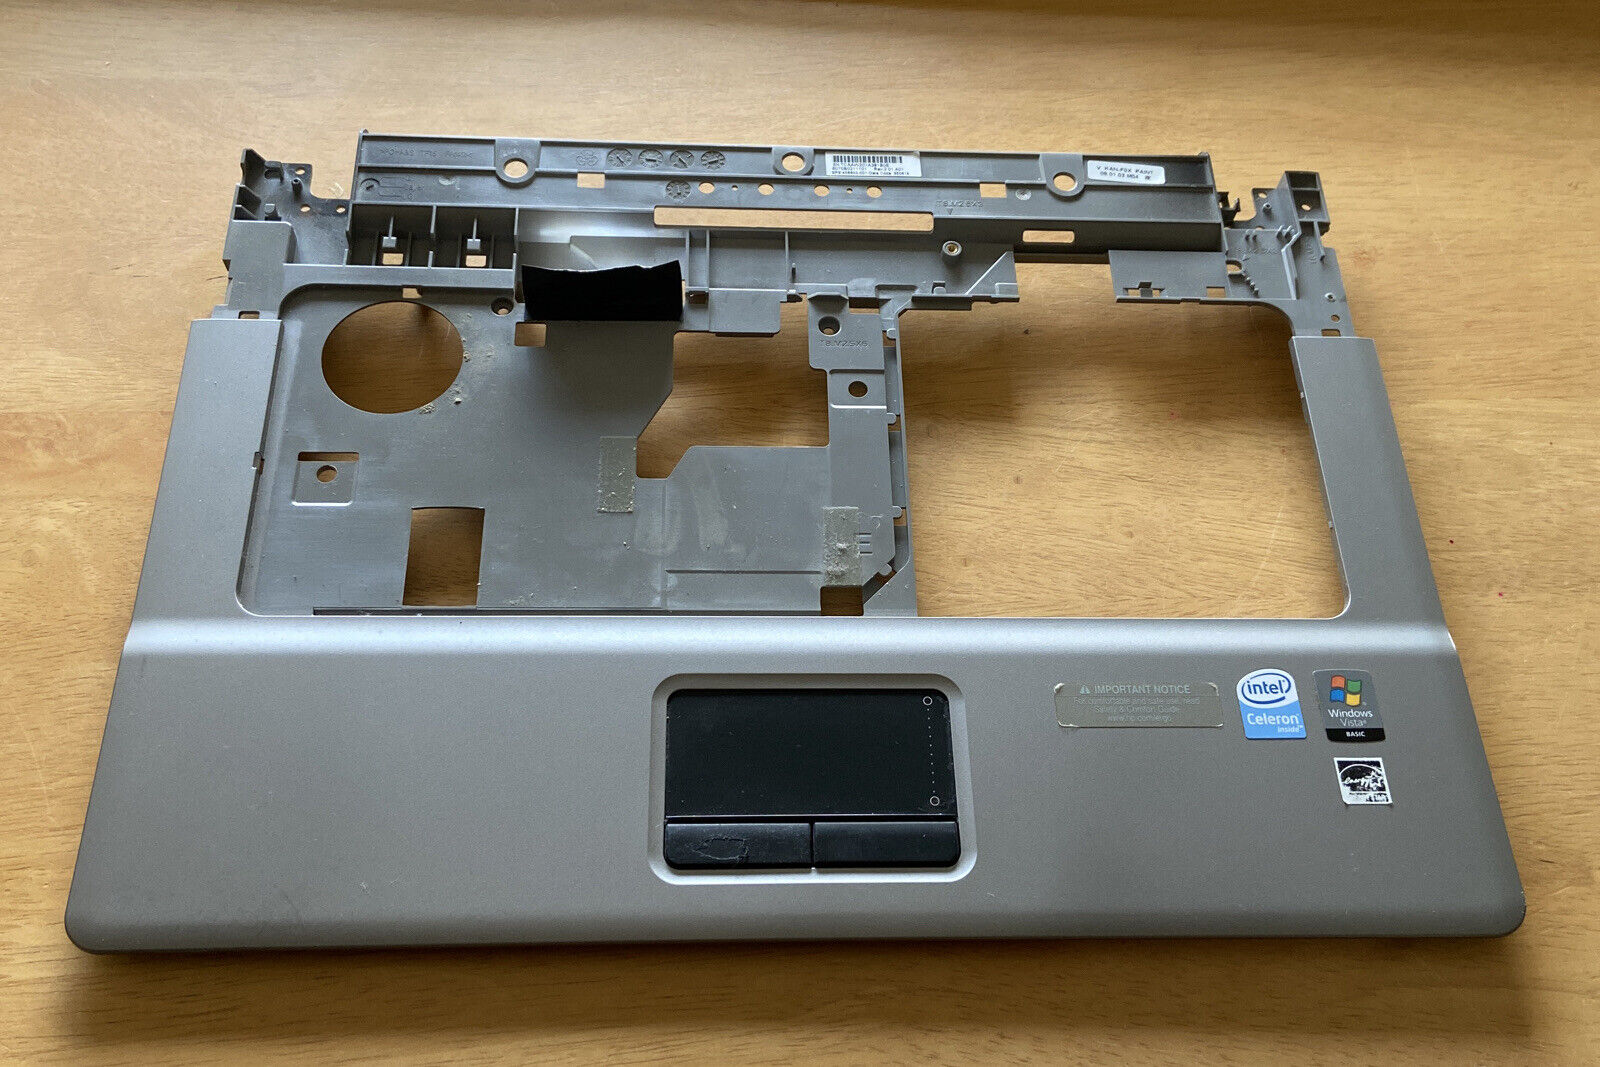 6720s Palmrest and Touchpad for HP Compaq Laptop HP 6720s 456803-001